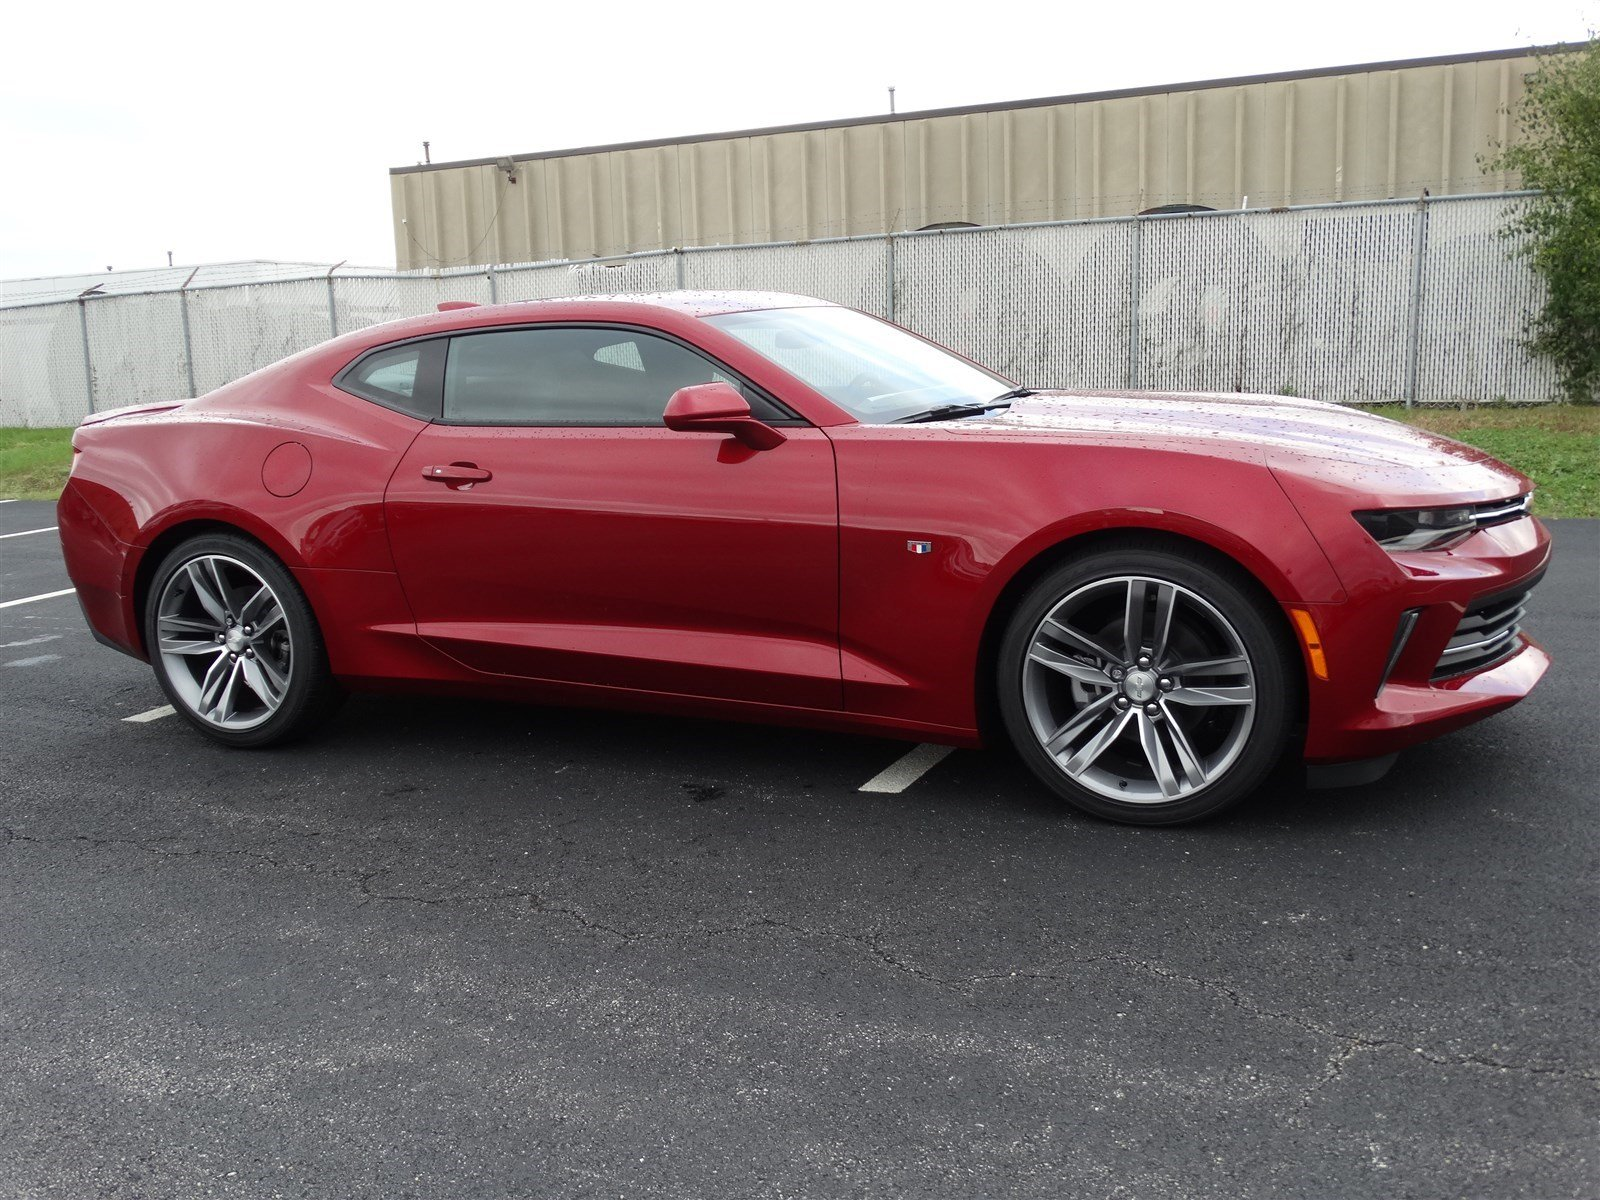 ... chevrolet camaro new 2017 chevrolet camaro lt leather rs package 8